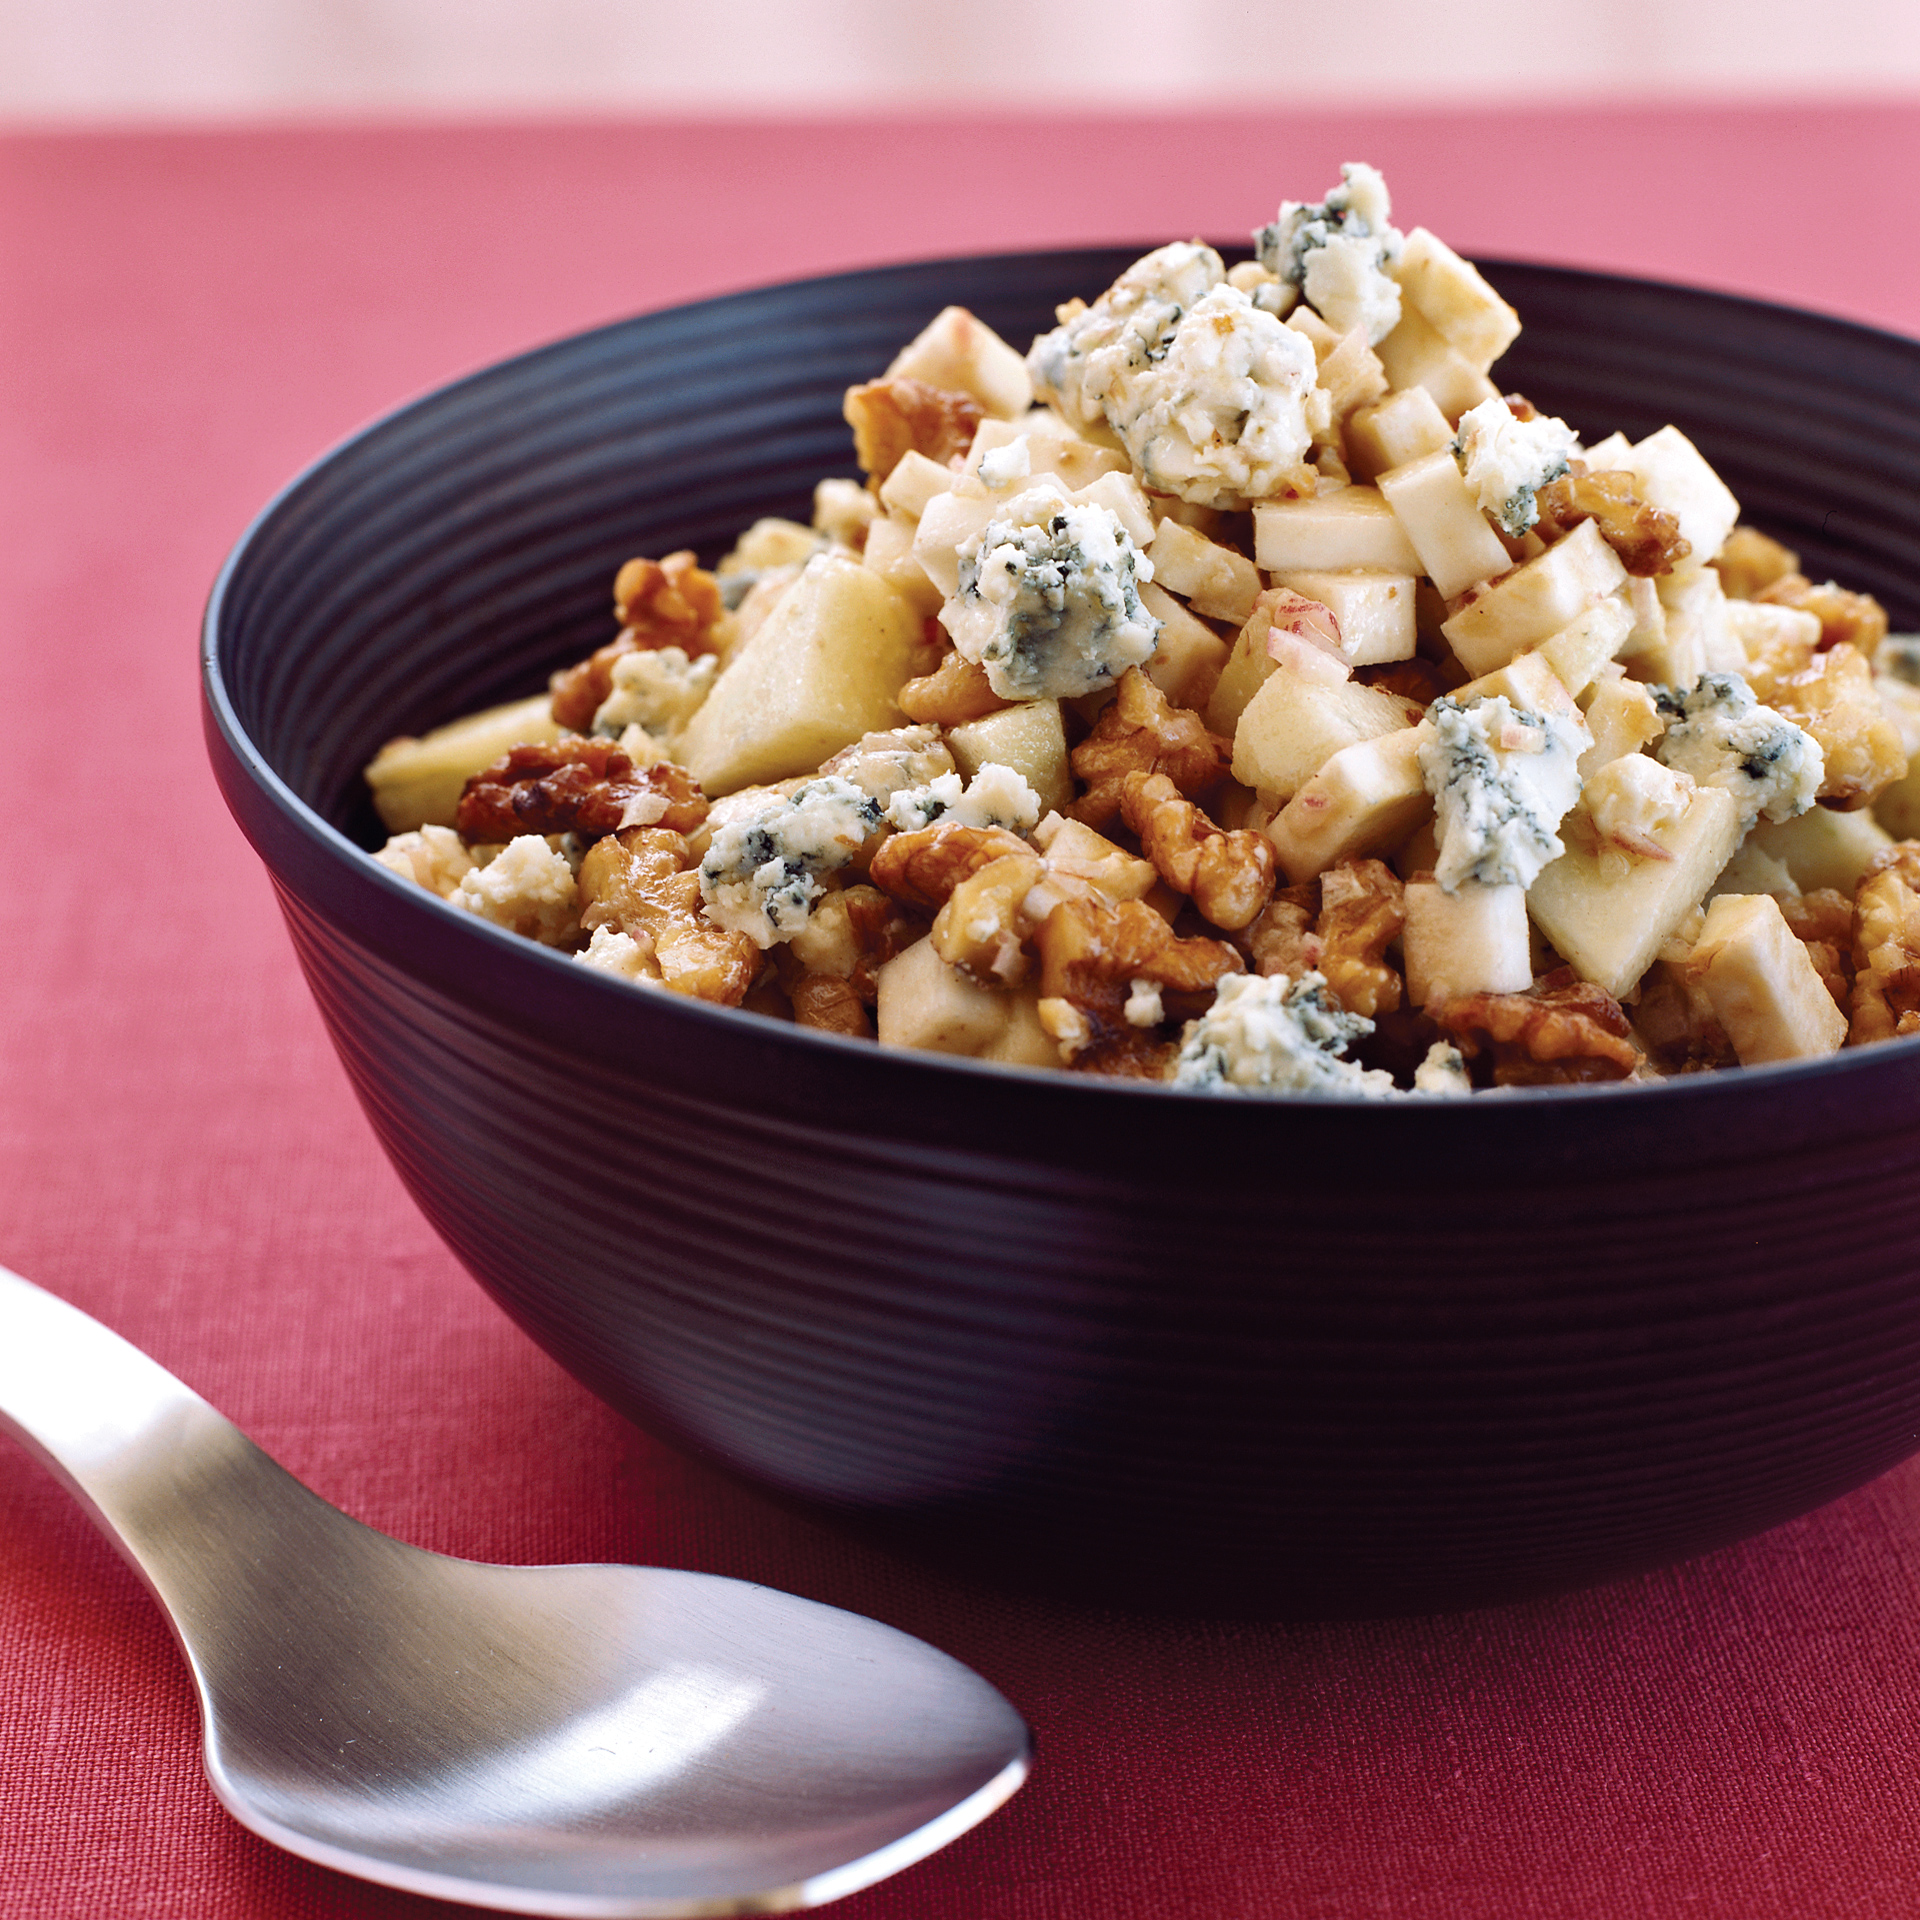 Celery Root with Apples, Walnuts and Blue Cheese